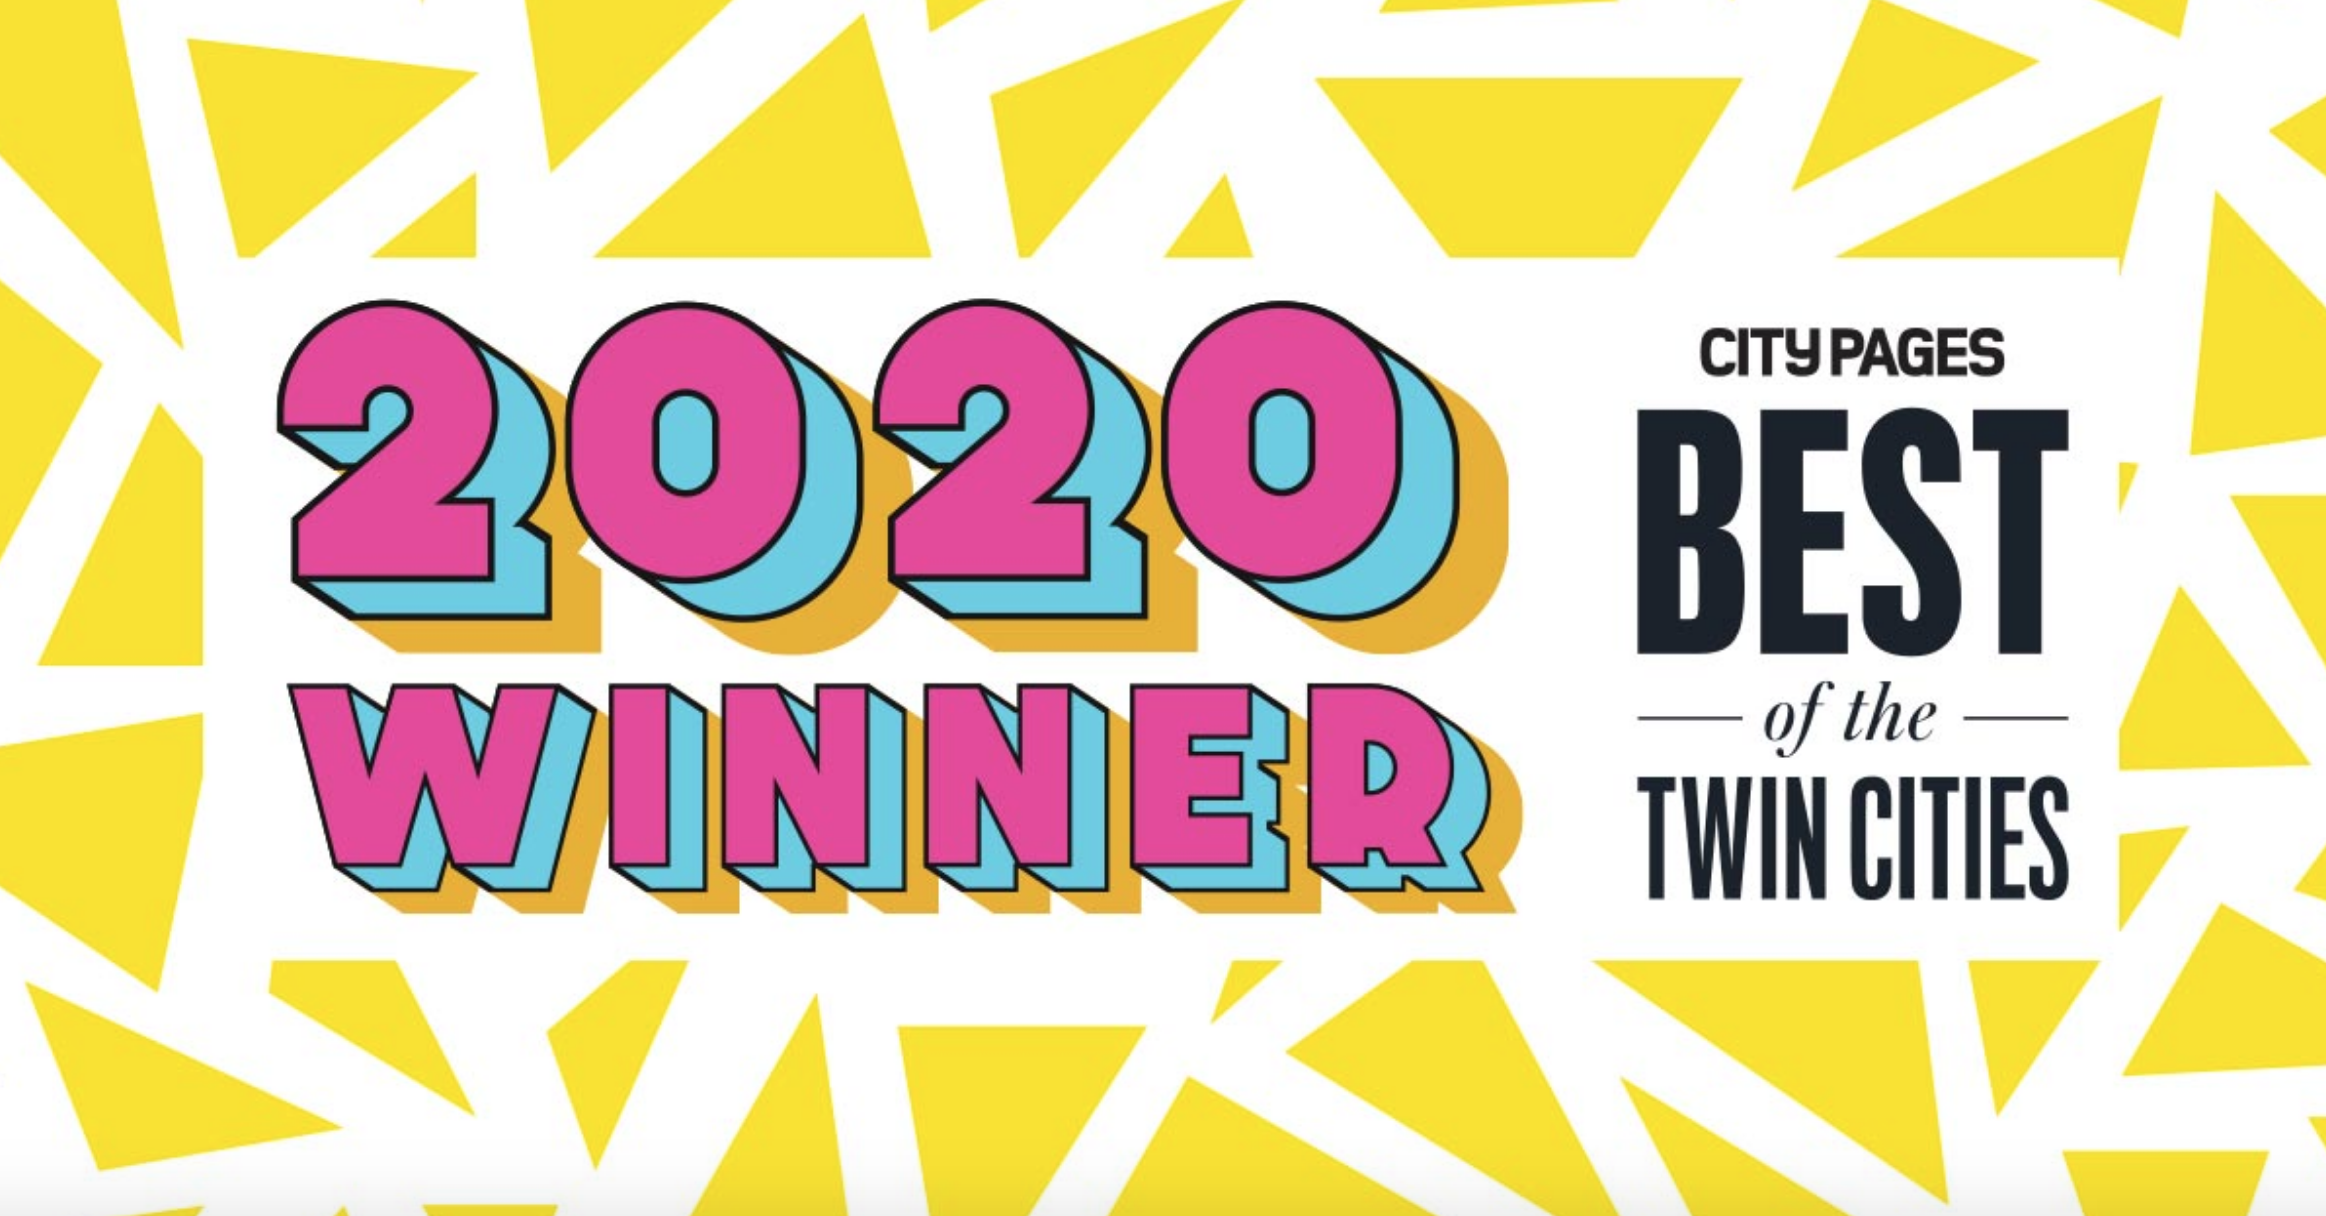 City Pages - Best of the Twin Cities - 2020 Winnter